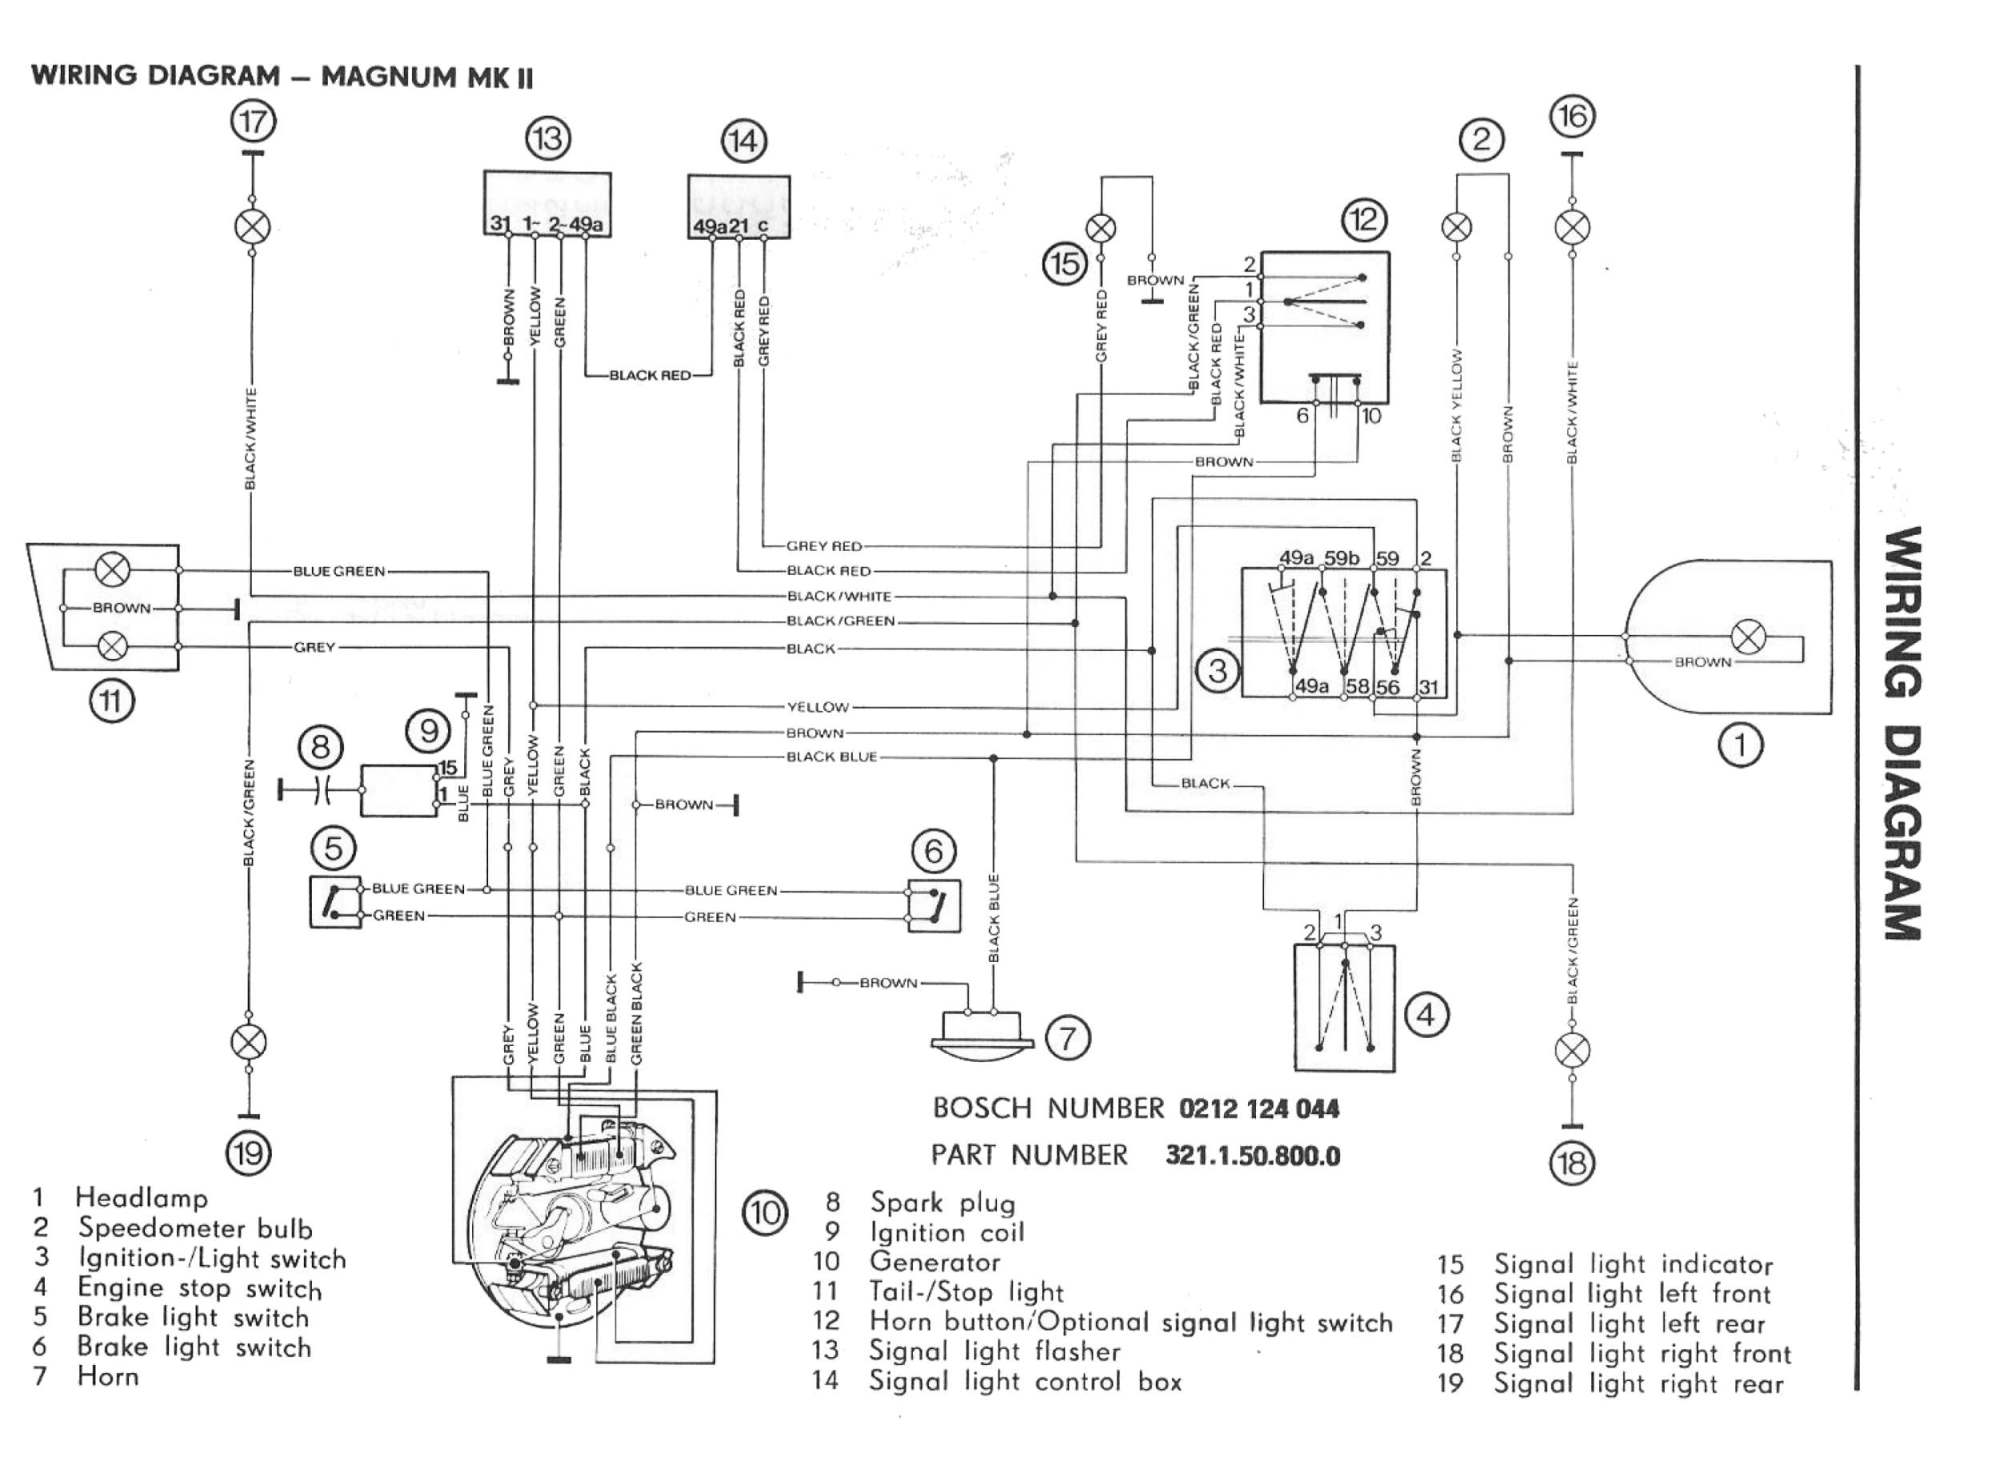 hight resolution of dan s motorcycle various wiring systems and diagrams